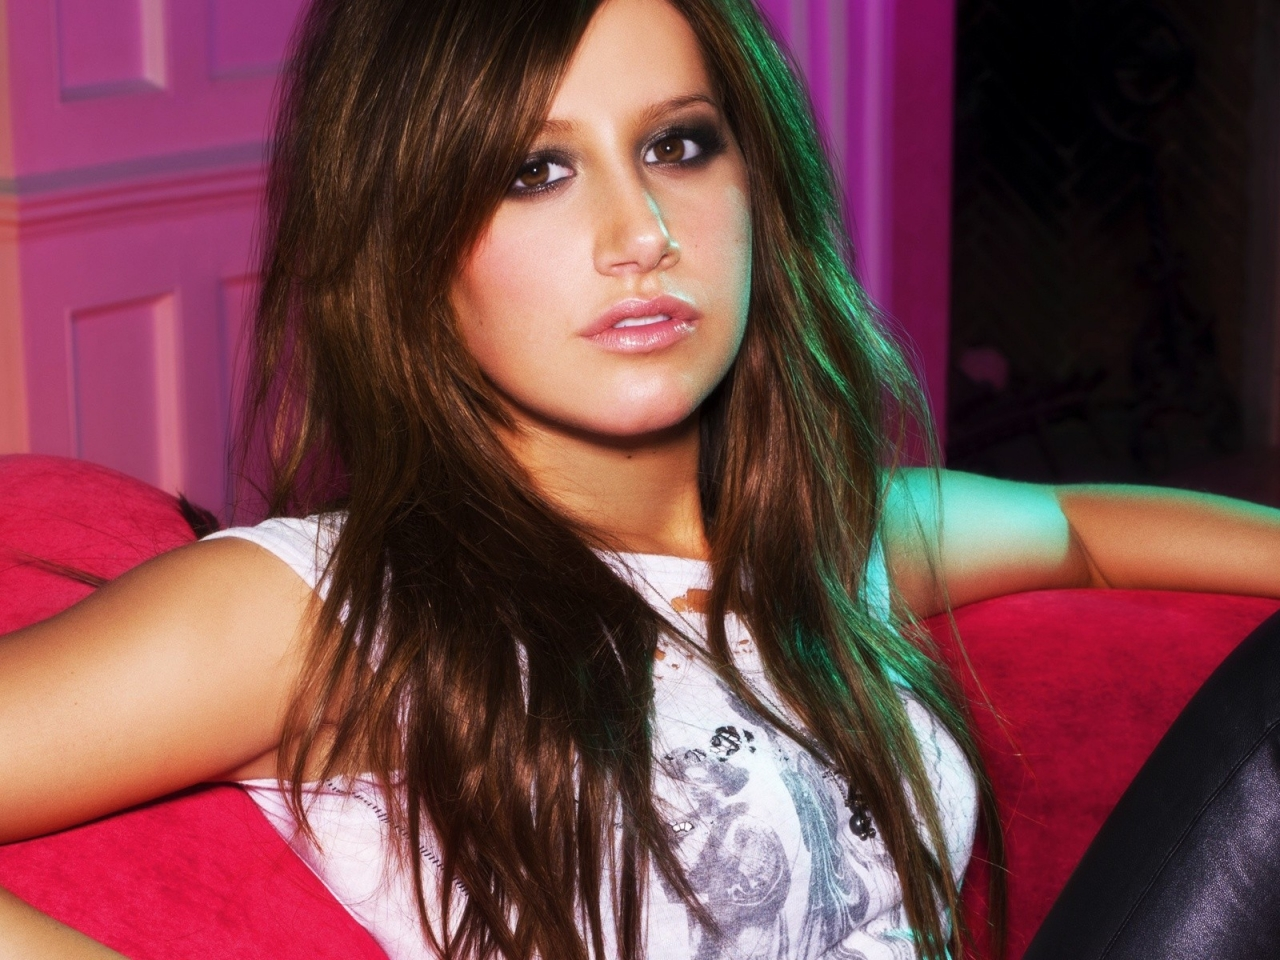 Ashley Tisdale hermosa - 1280x960